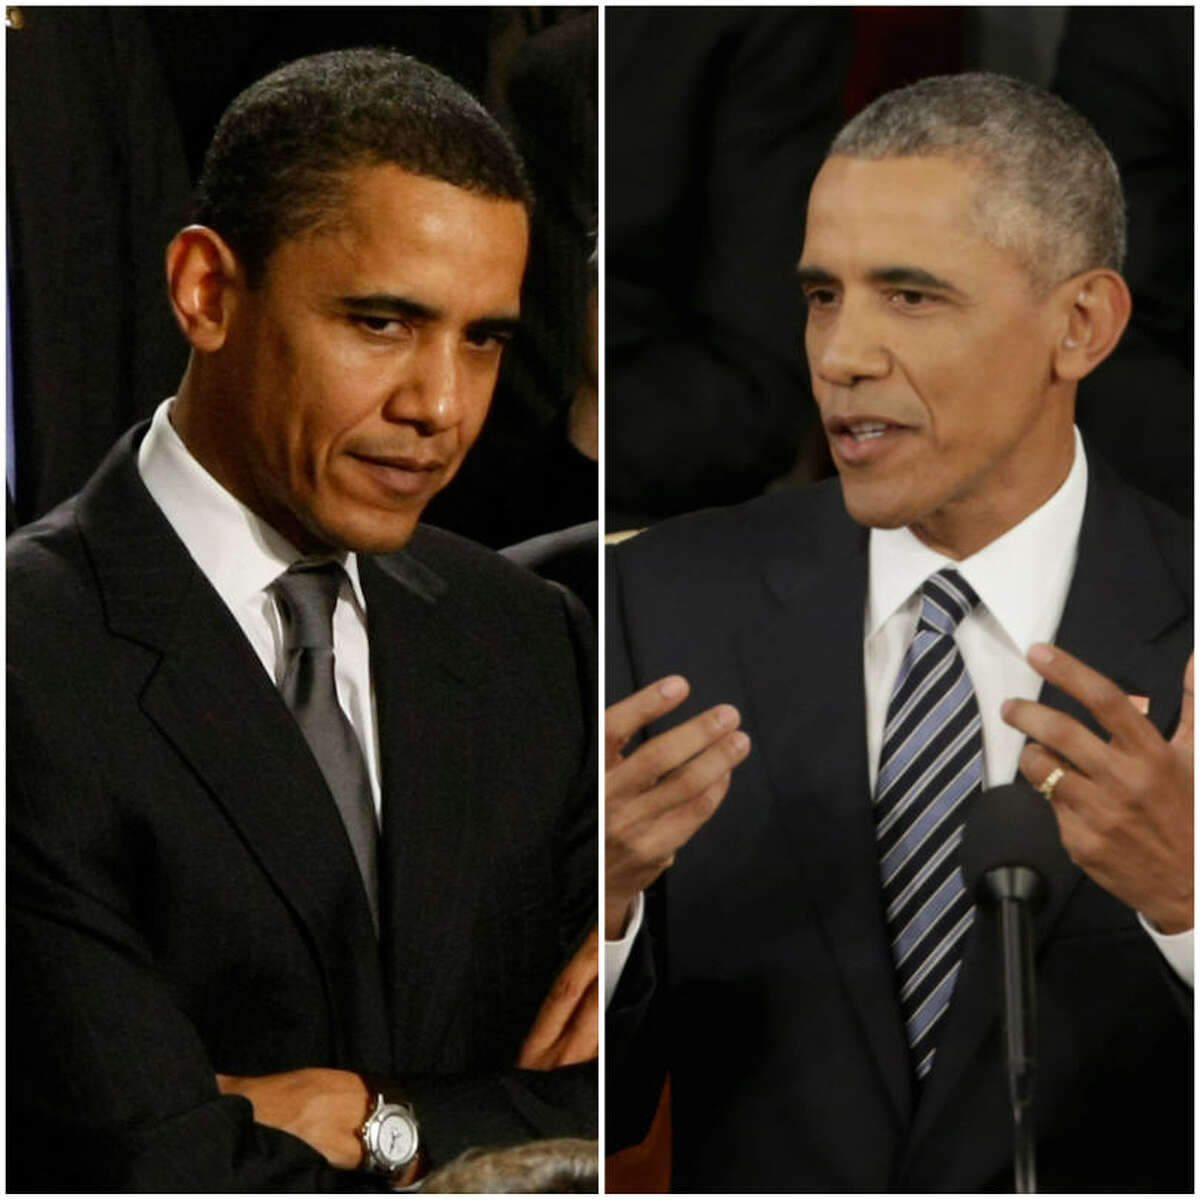 For the past 8 years, the American people have watched President Barack Obama age.